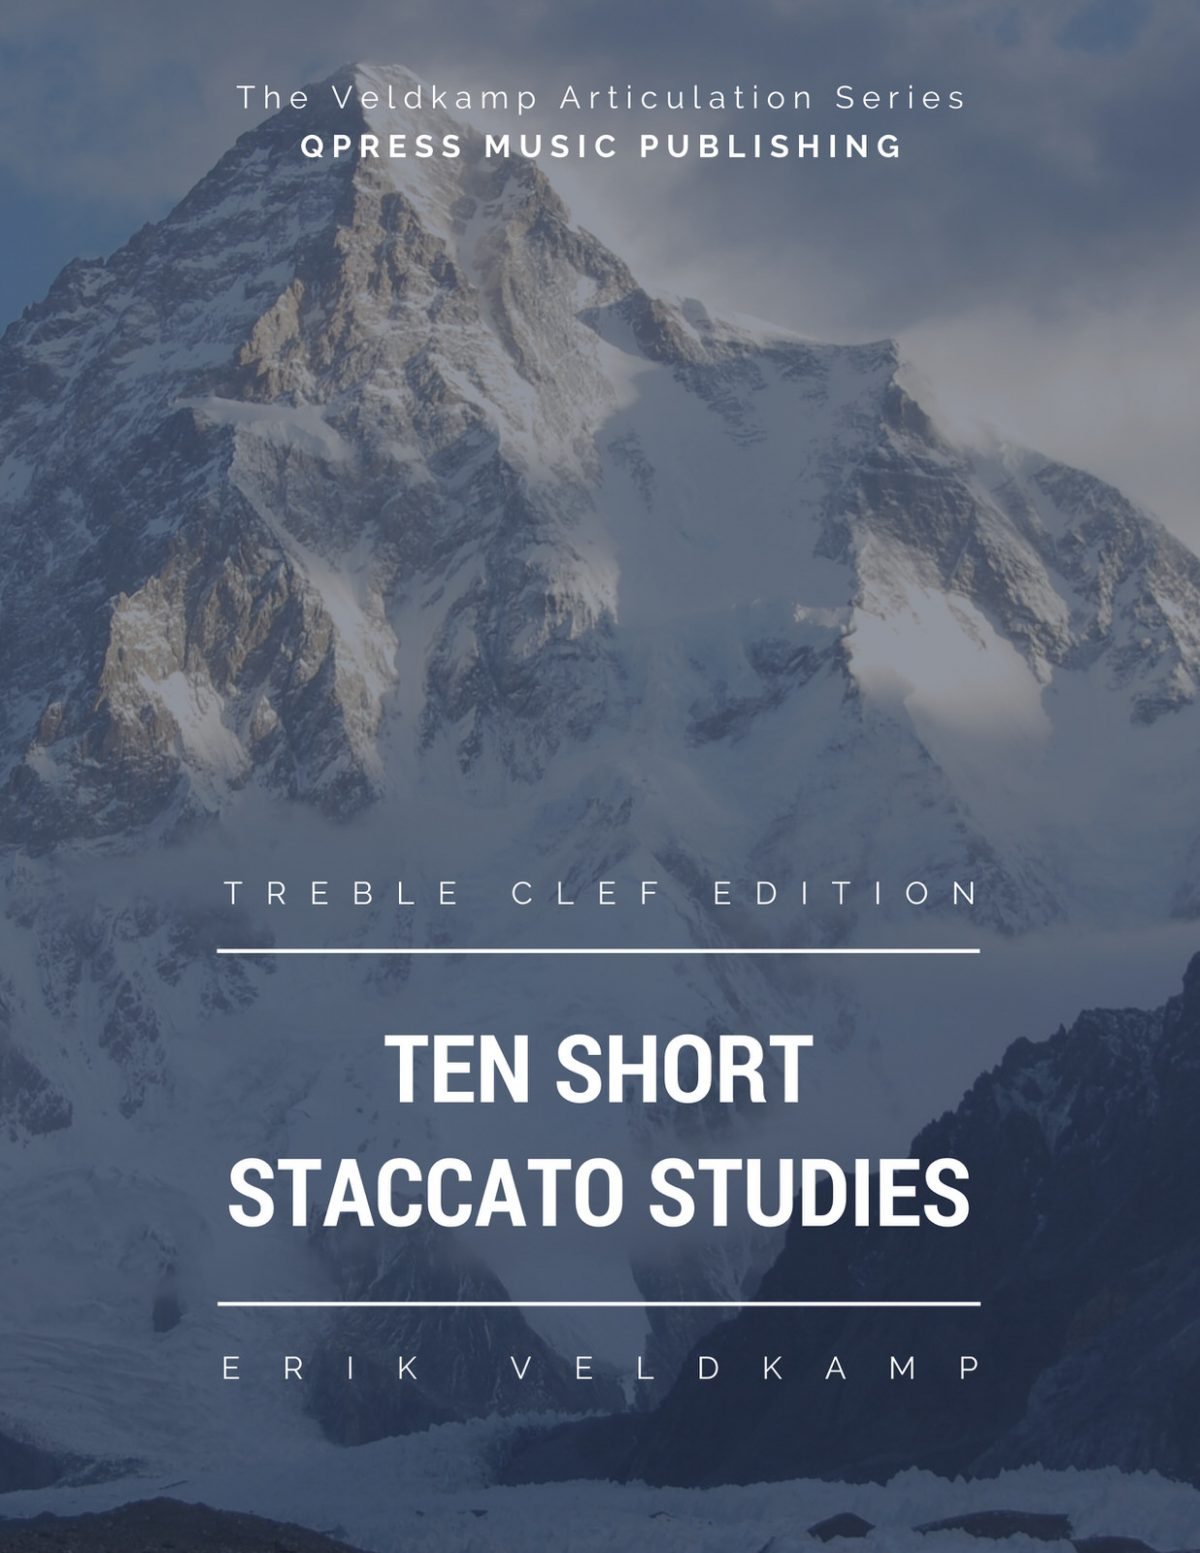 Veldkamp, 10 Short Staccato Studies